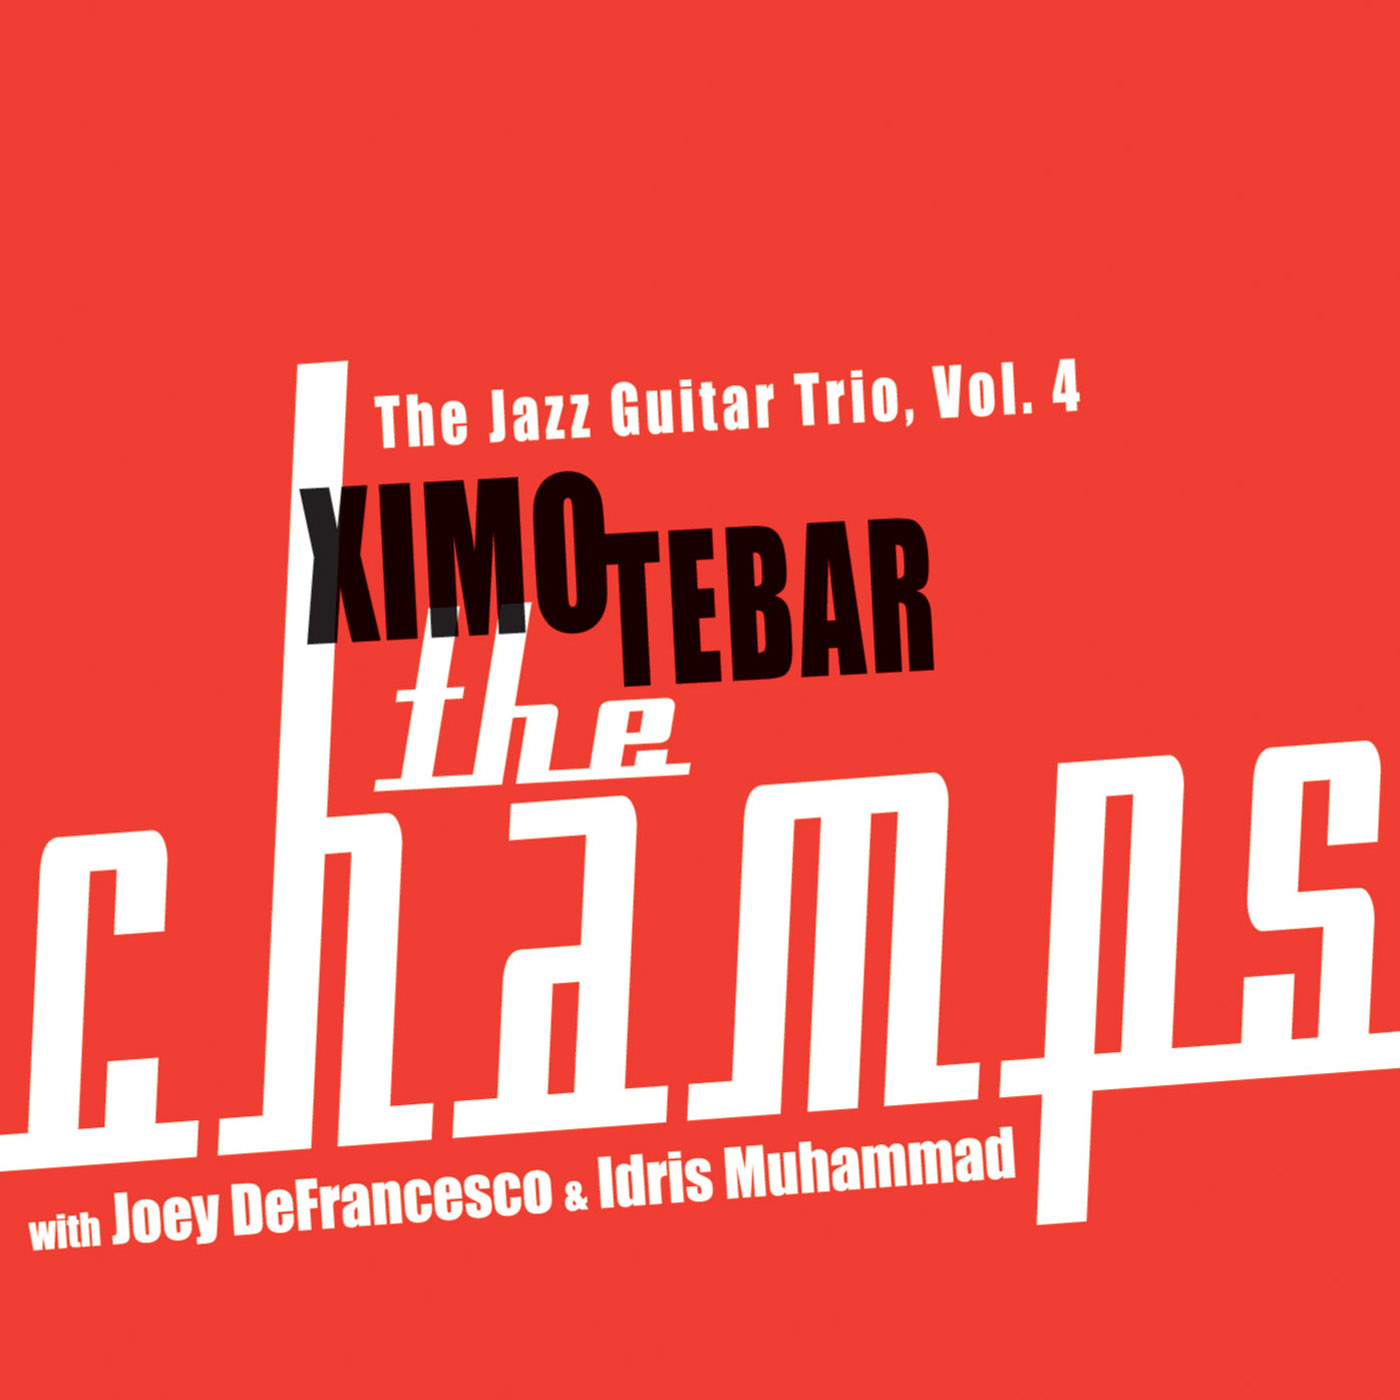 The Champs by  Ximo Tebar cover